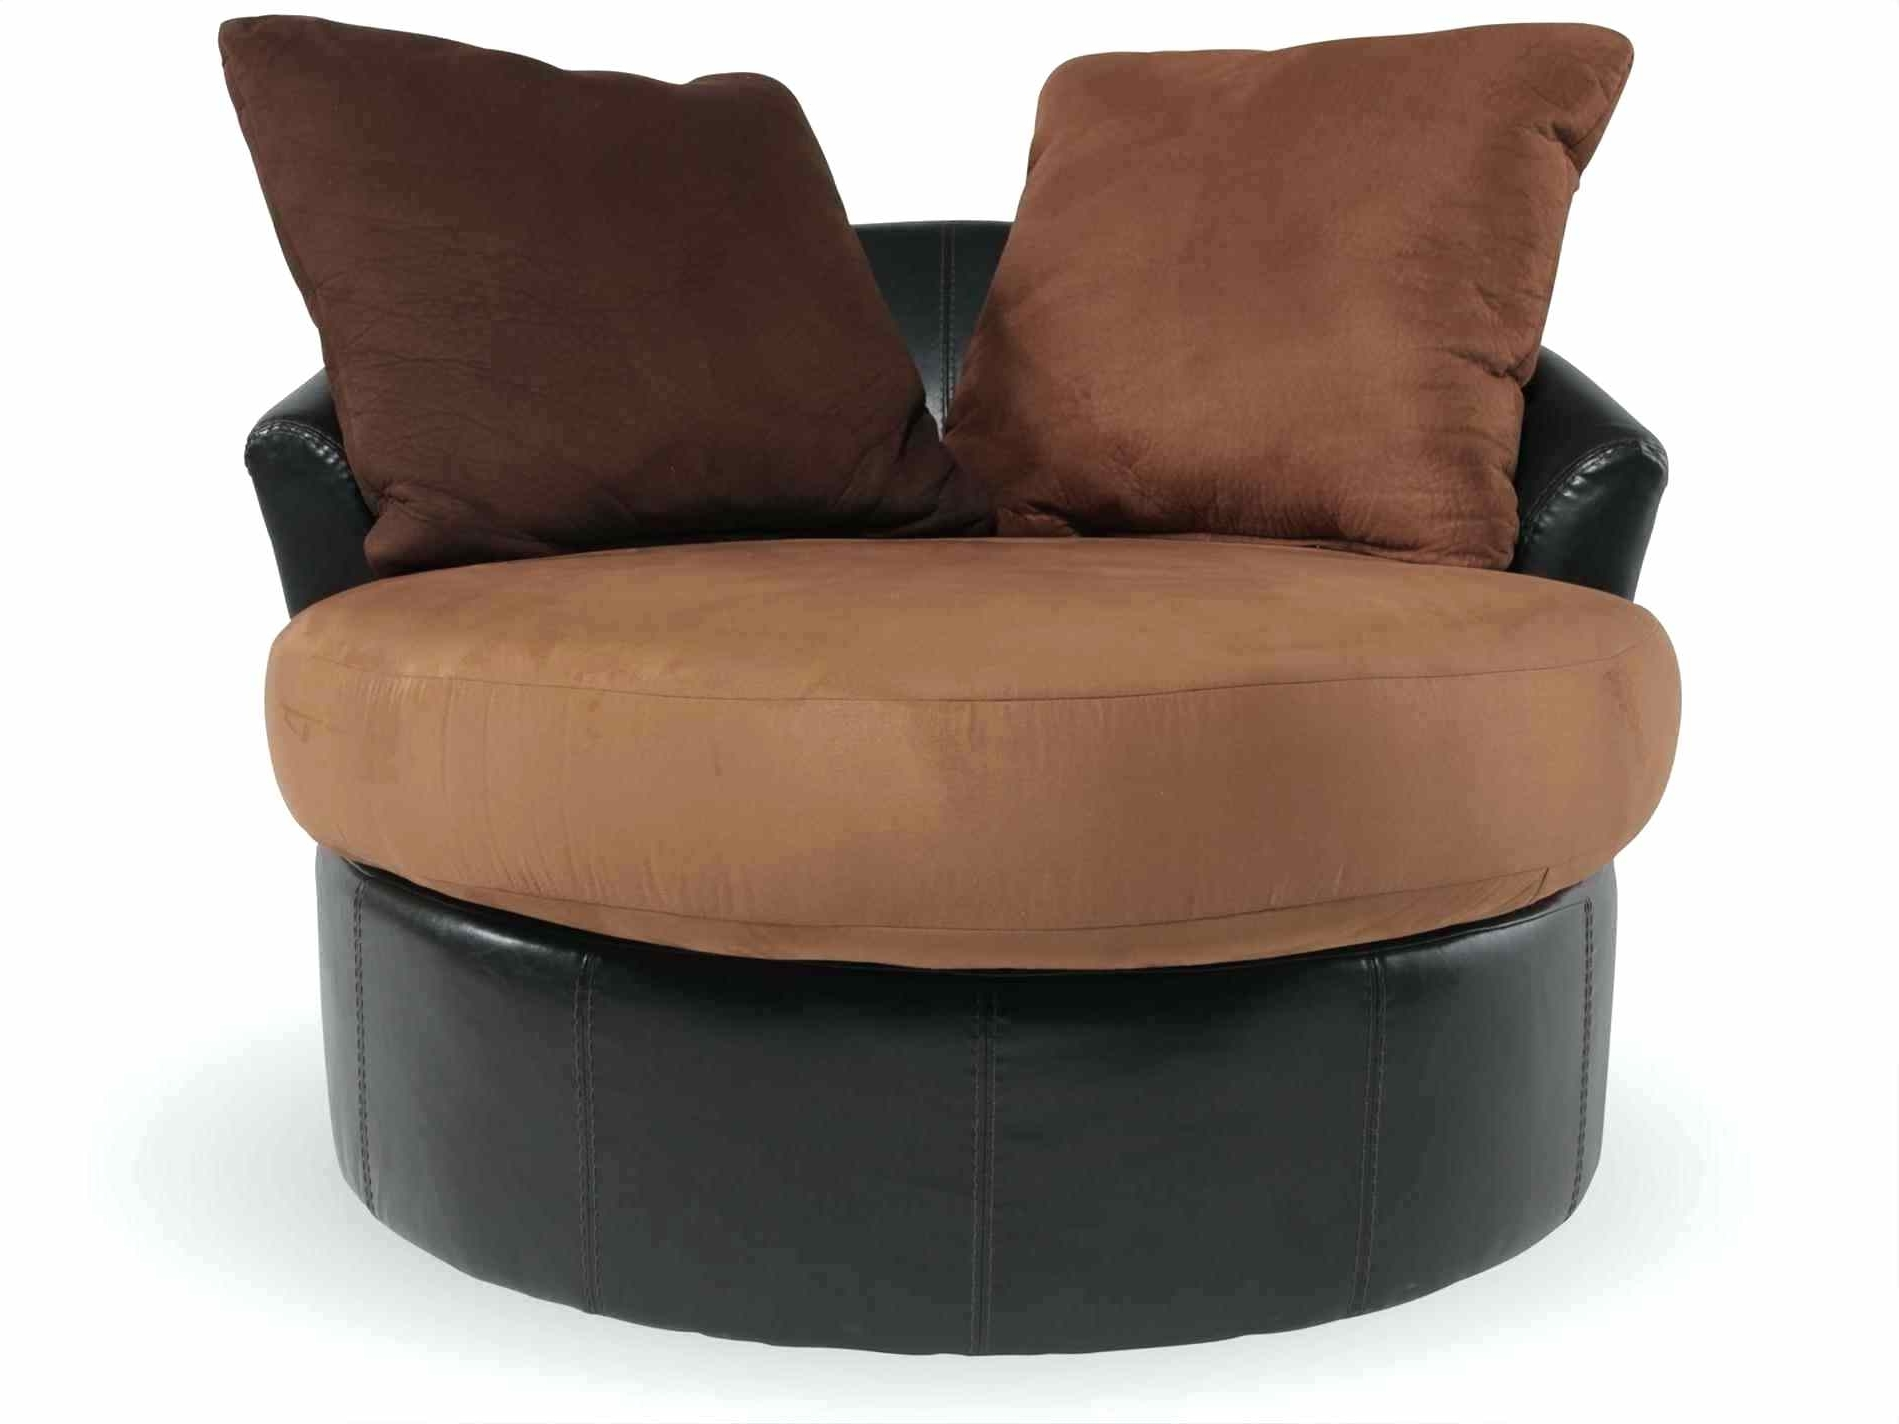 2019 Round Swivel Cuddle Chair Large Dfs Black Leather With Footstool In Snuggle Sofas (View 2 of 20)